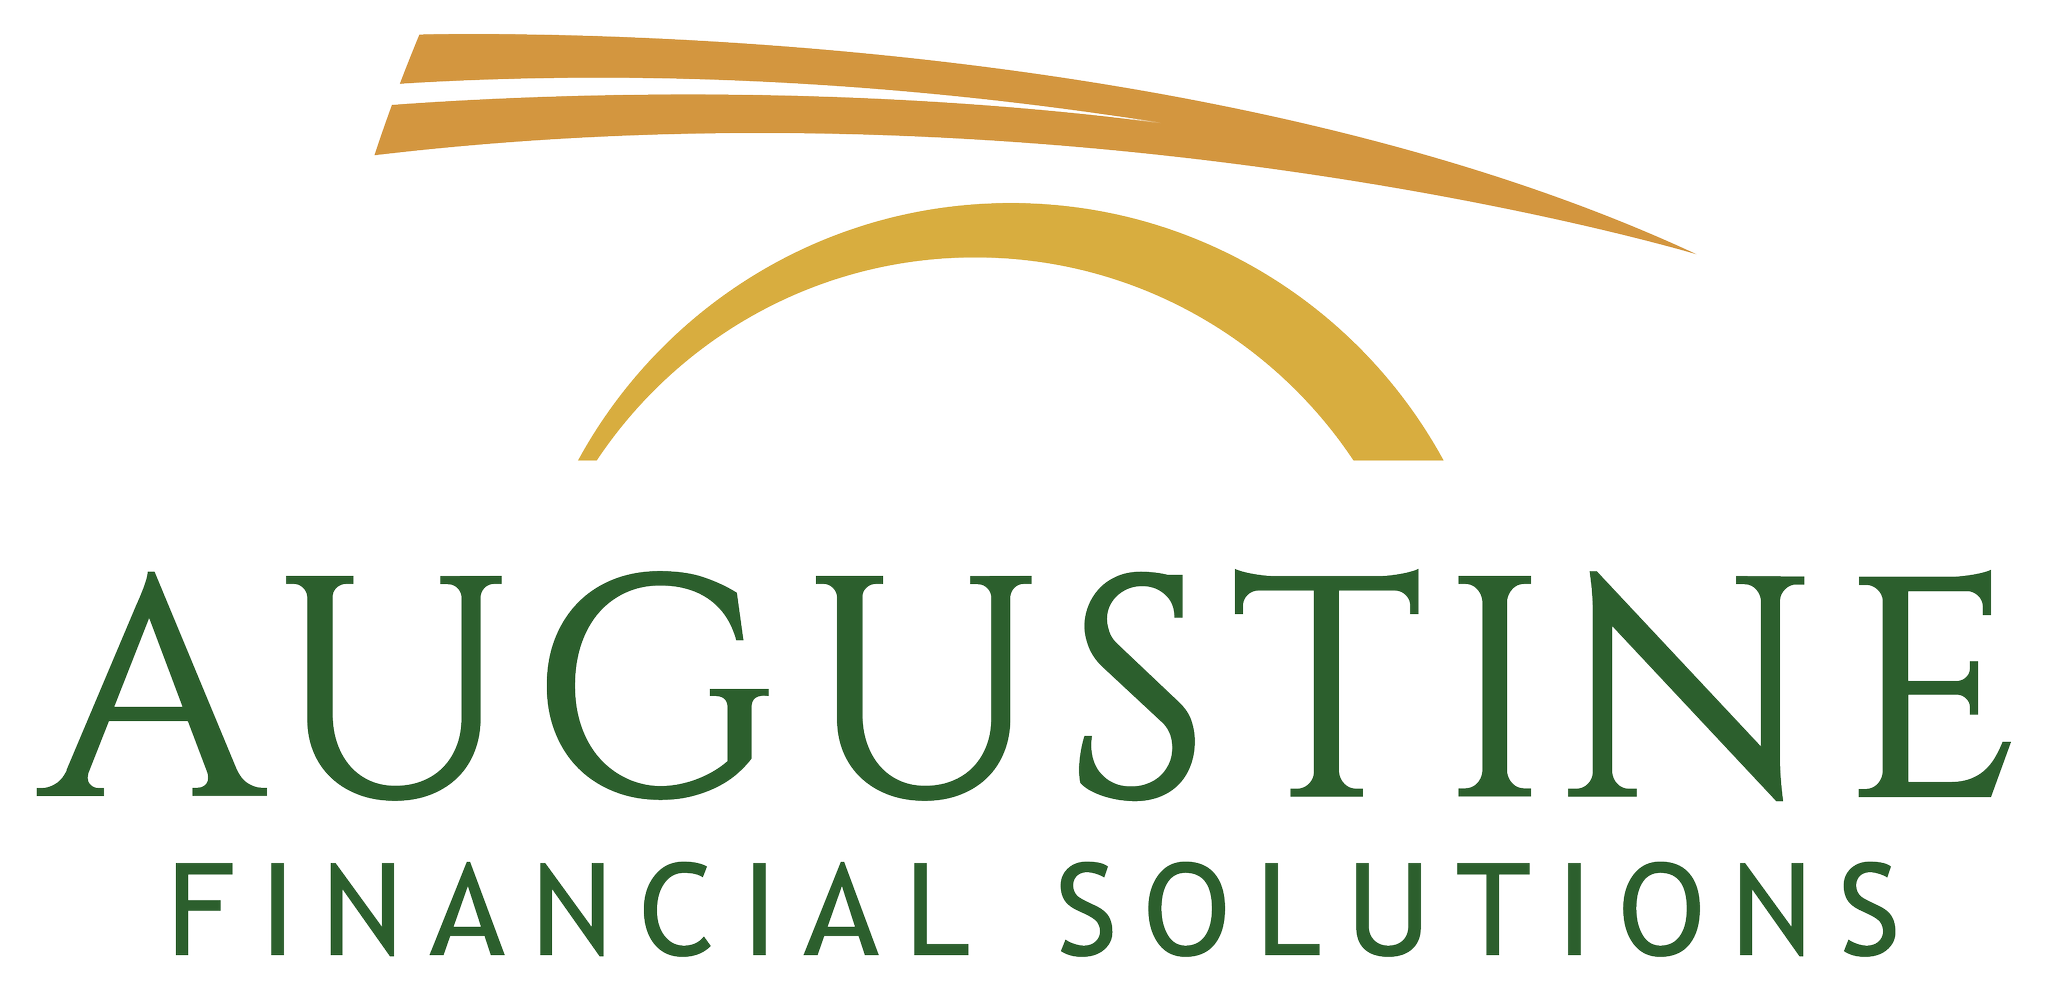 Augustine Financial Solutions, LLC